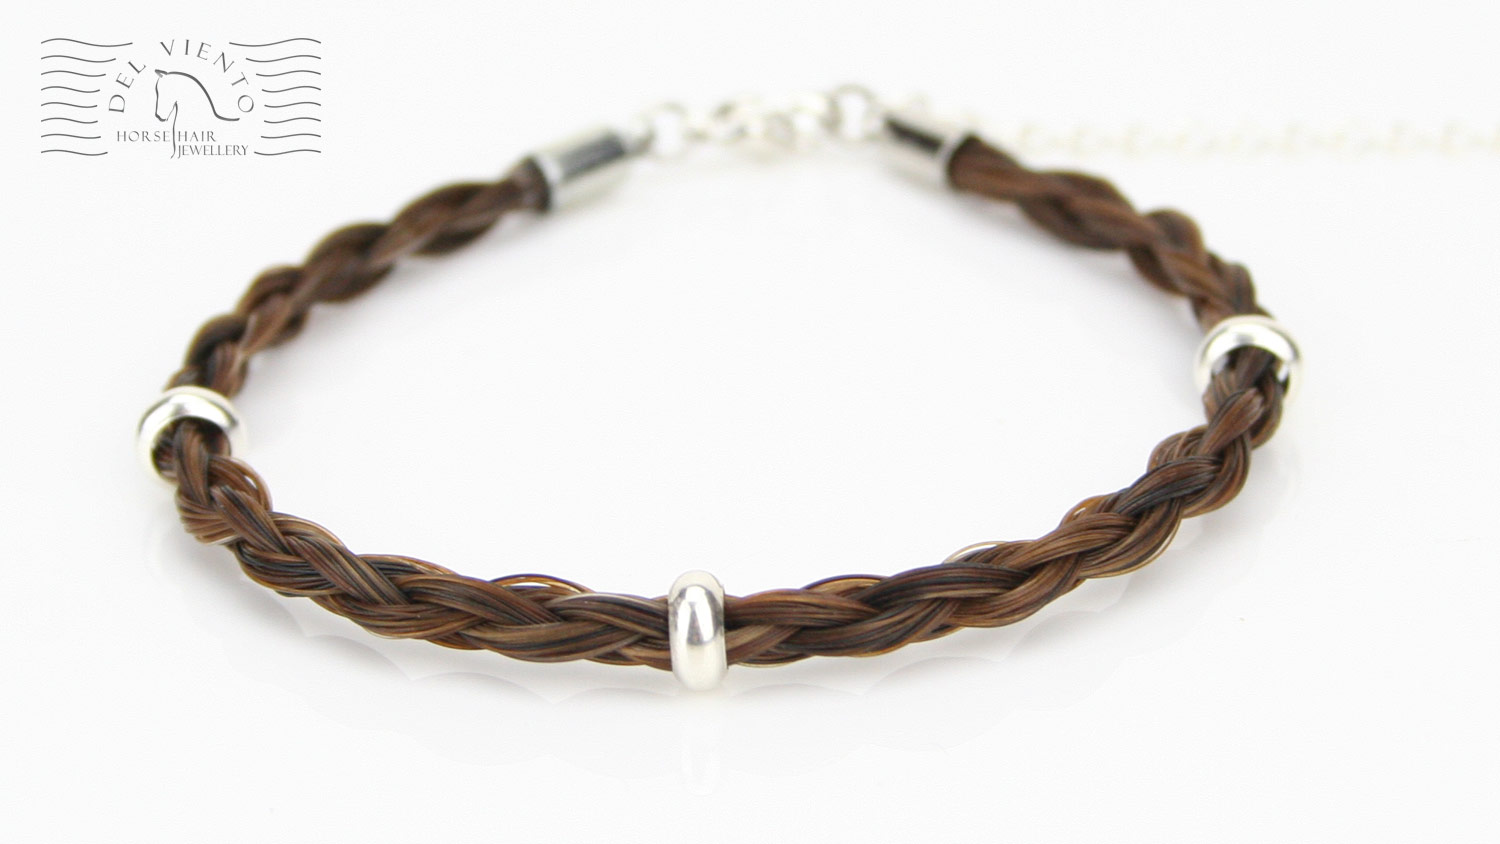 Horse Hair Bracelets, Hand Made From Your Own Horse's Hair